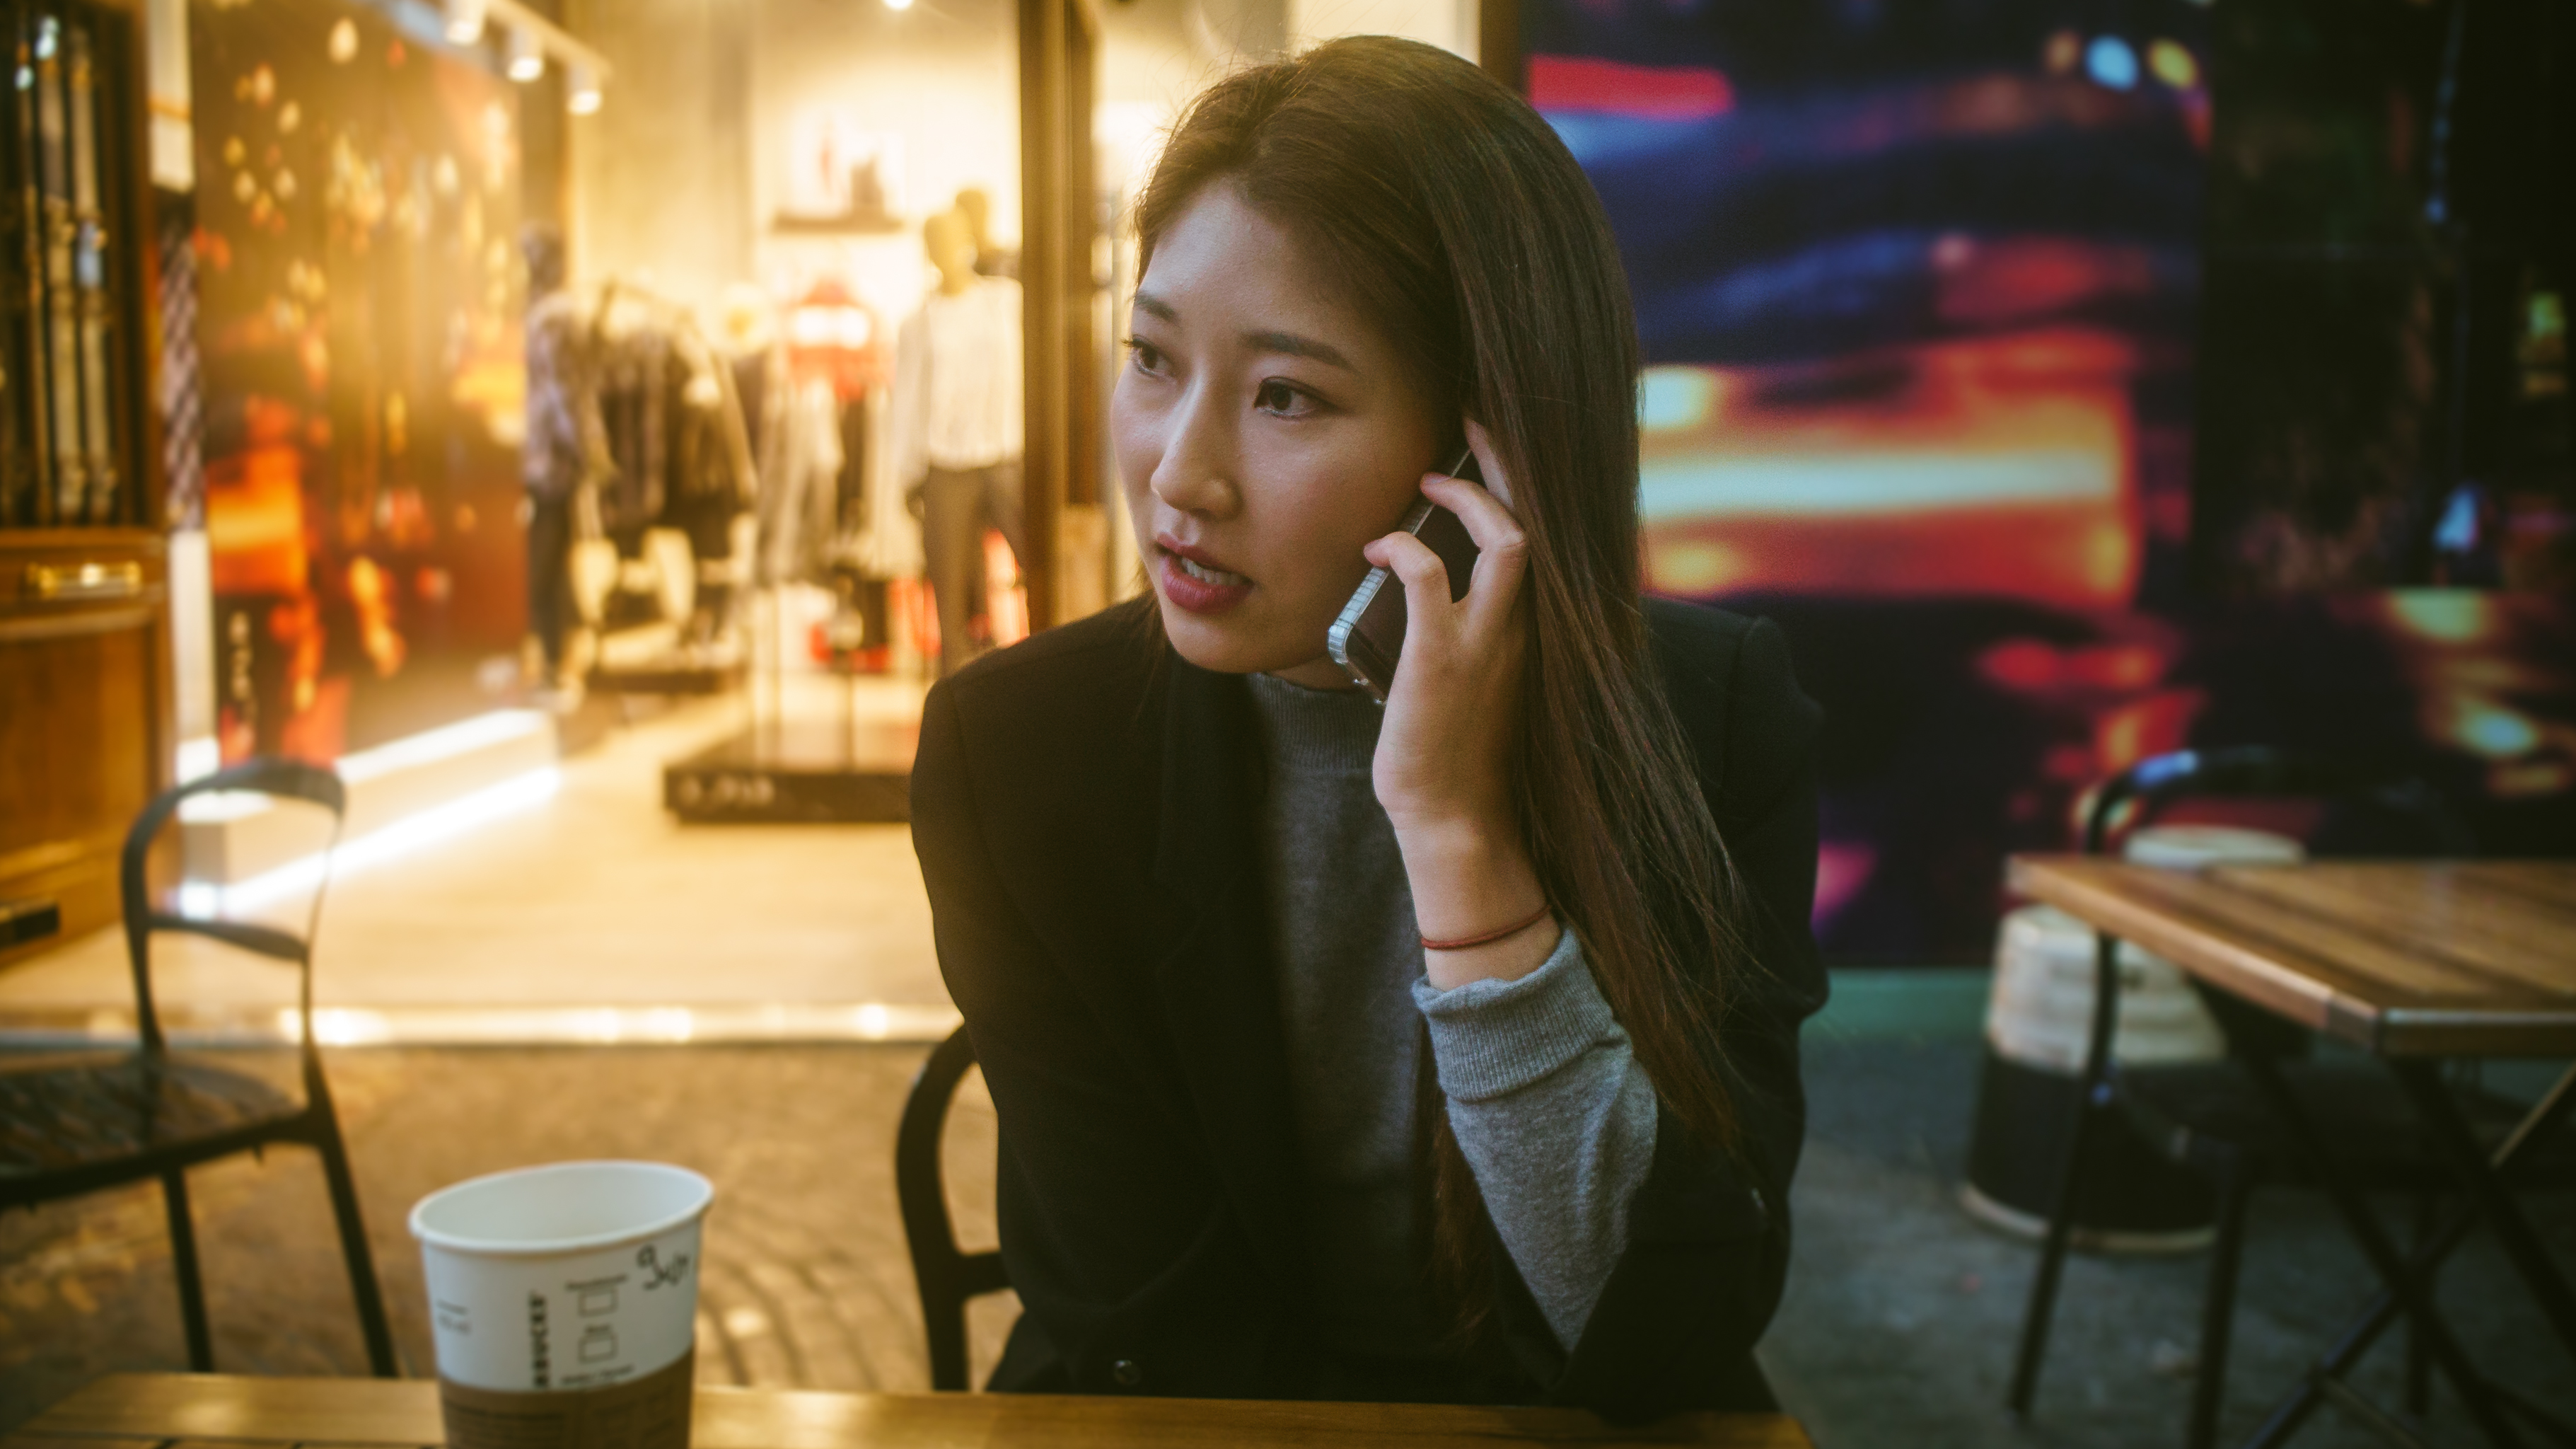 woman talking on phone outdoor in front of store